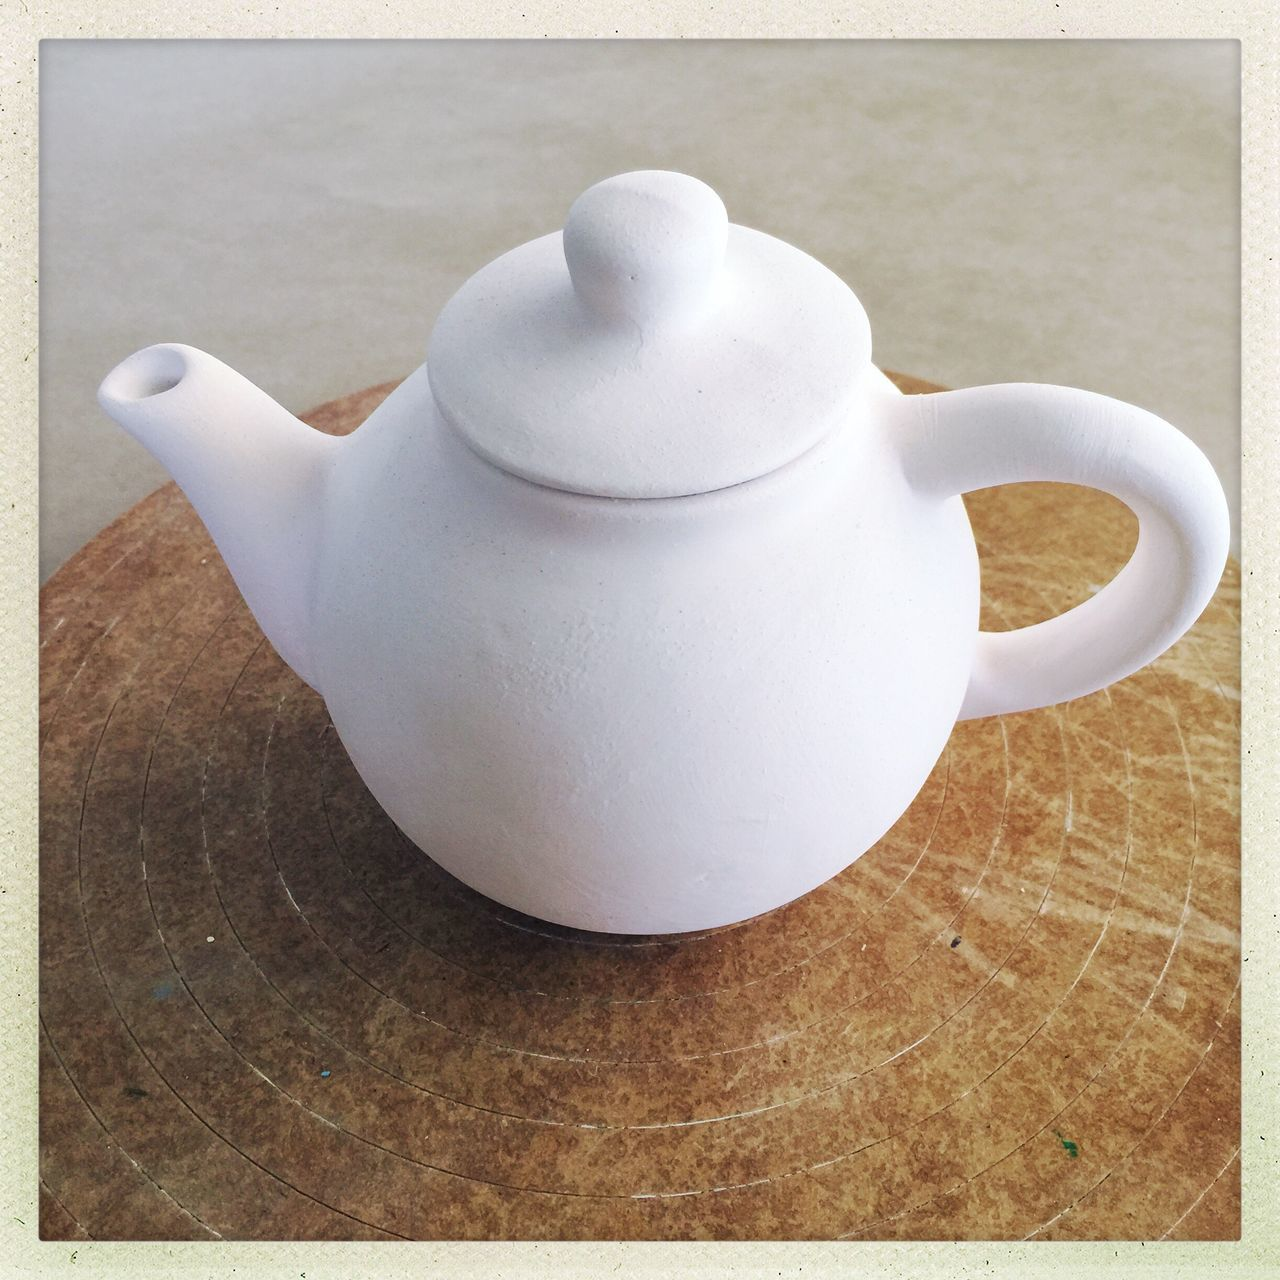 Teapot Tea Tea Time Clay Pot Clay Bare Art Craft Crockery Wood